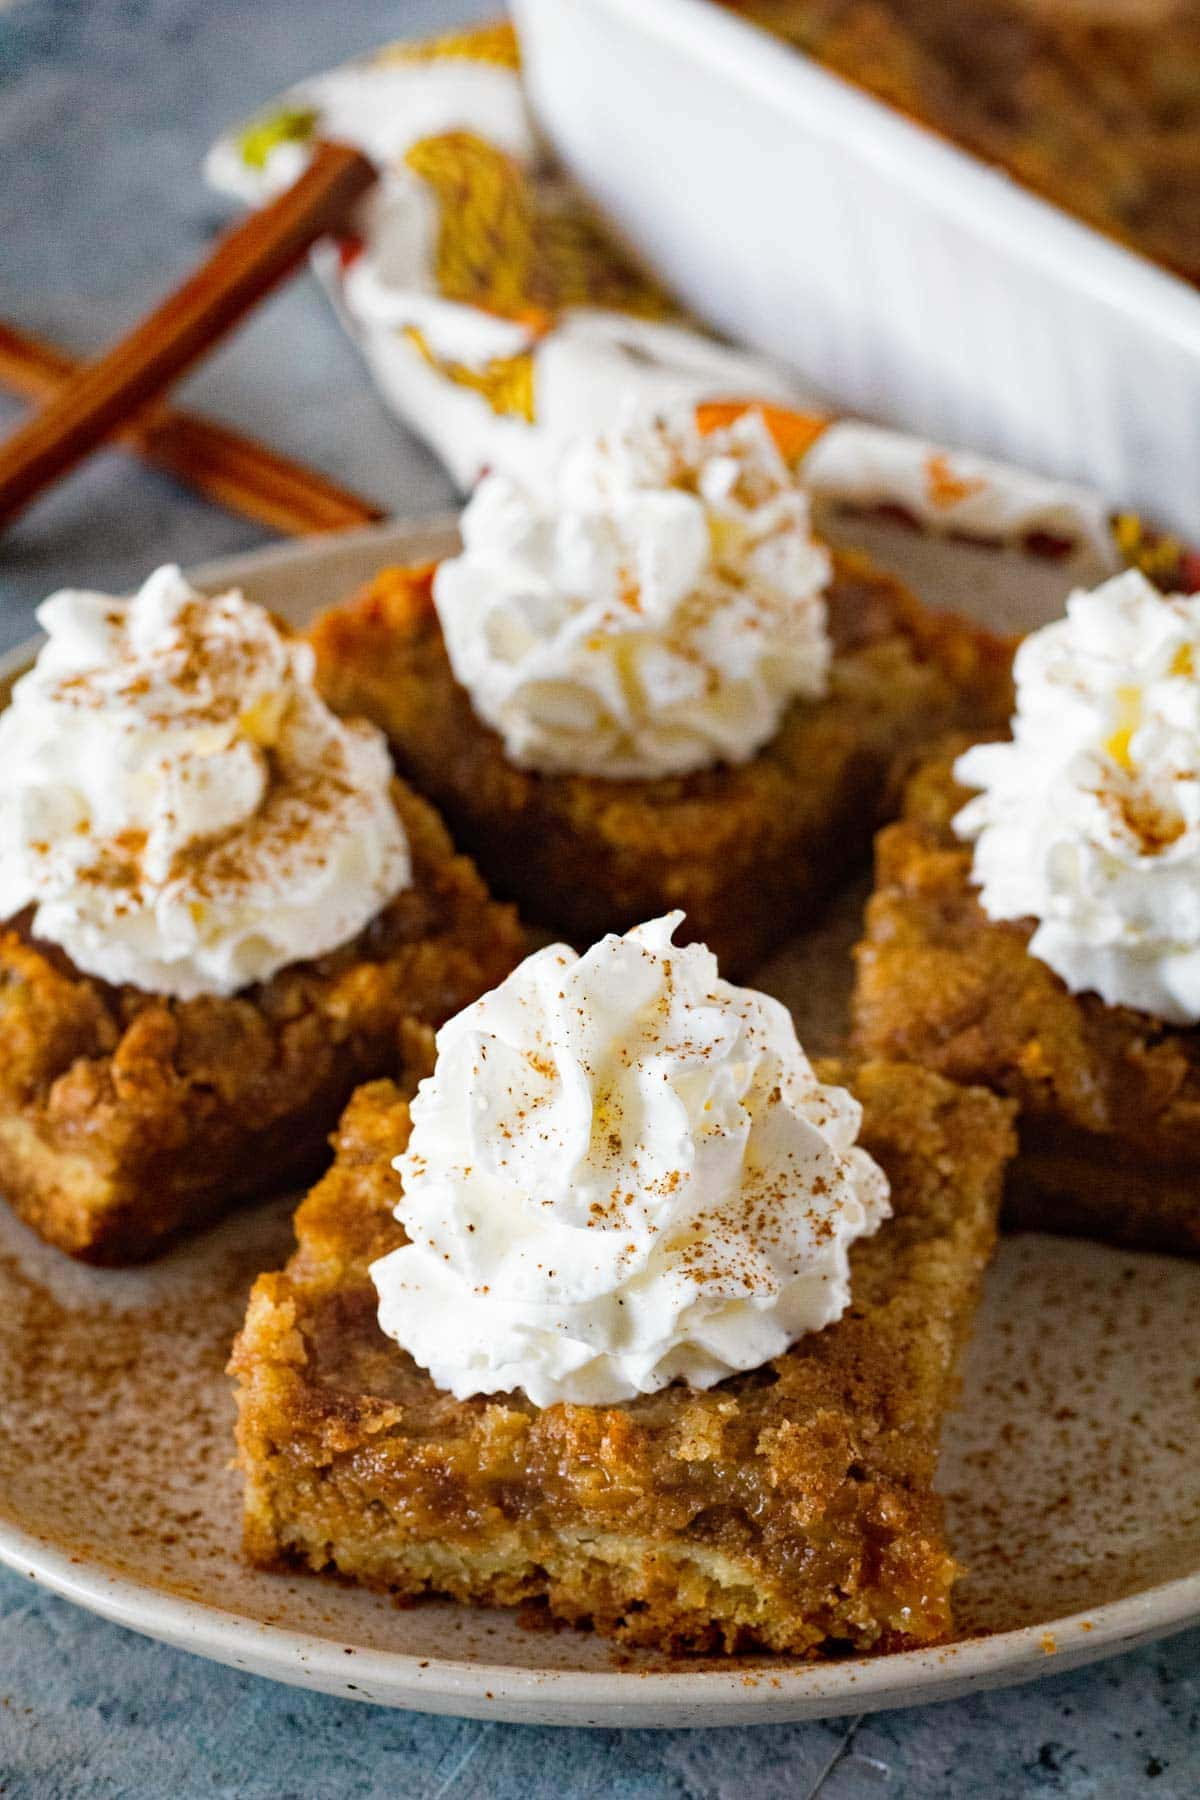 If you are looking for an easy pumpkin bar recipe this is it!